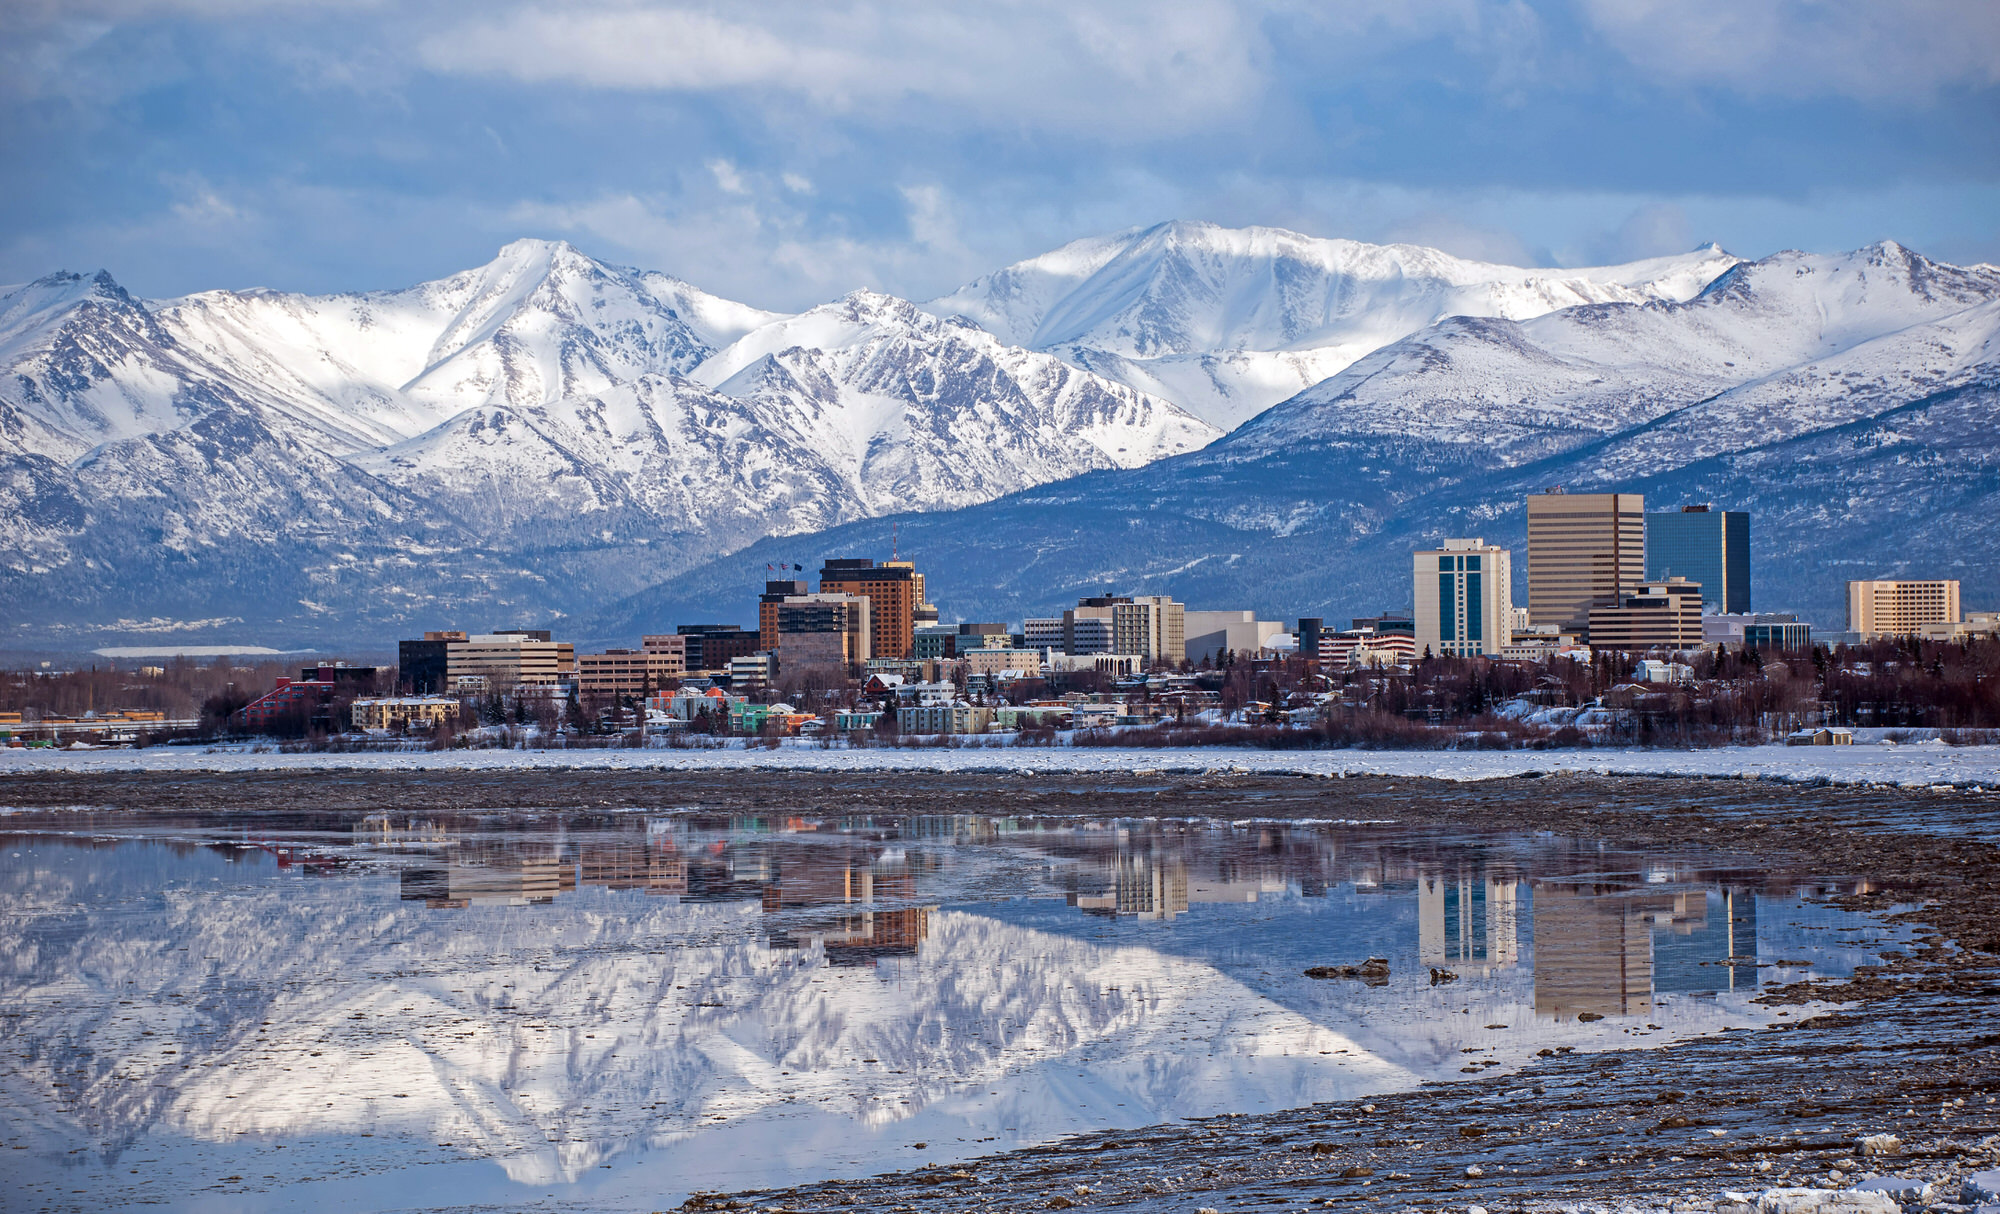 bloomberg.org - Mike Bloomberg Announces City of Anchorage Will Receive $1 Million for Public Art Project Addressing Climate Change & Economic Development - Public Art Challenge